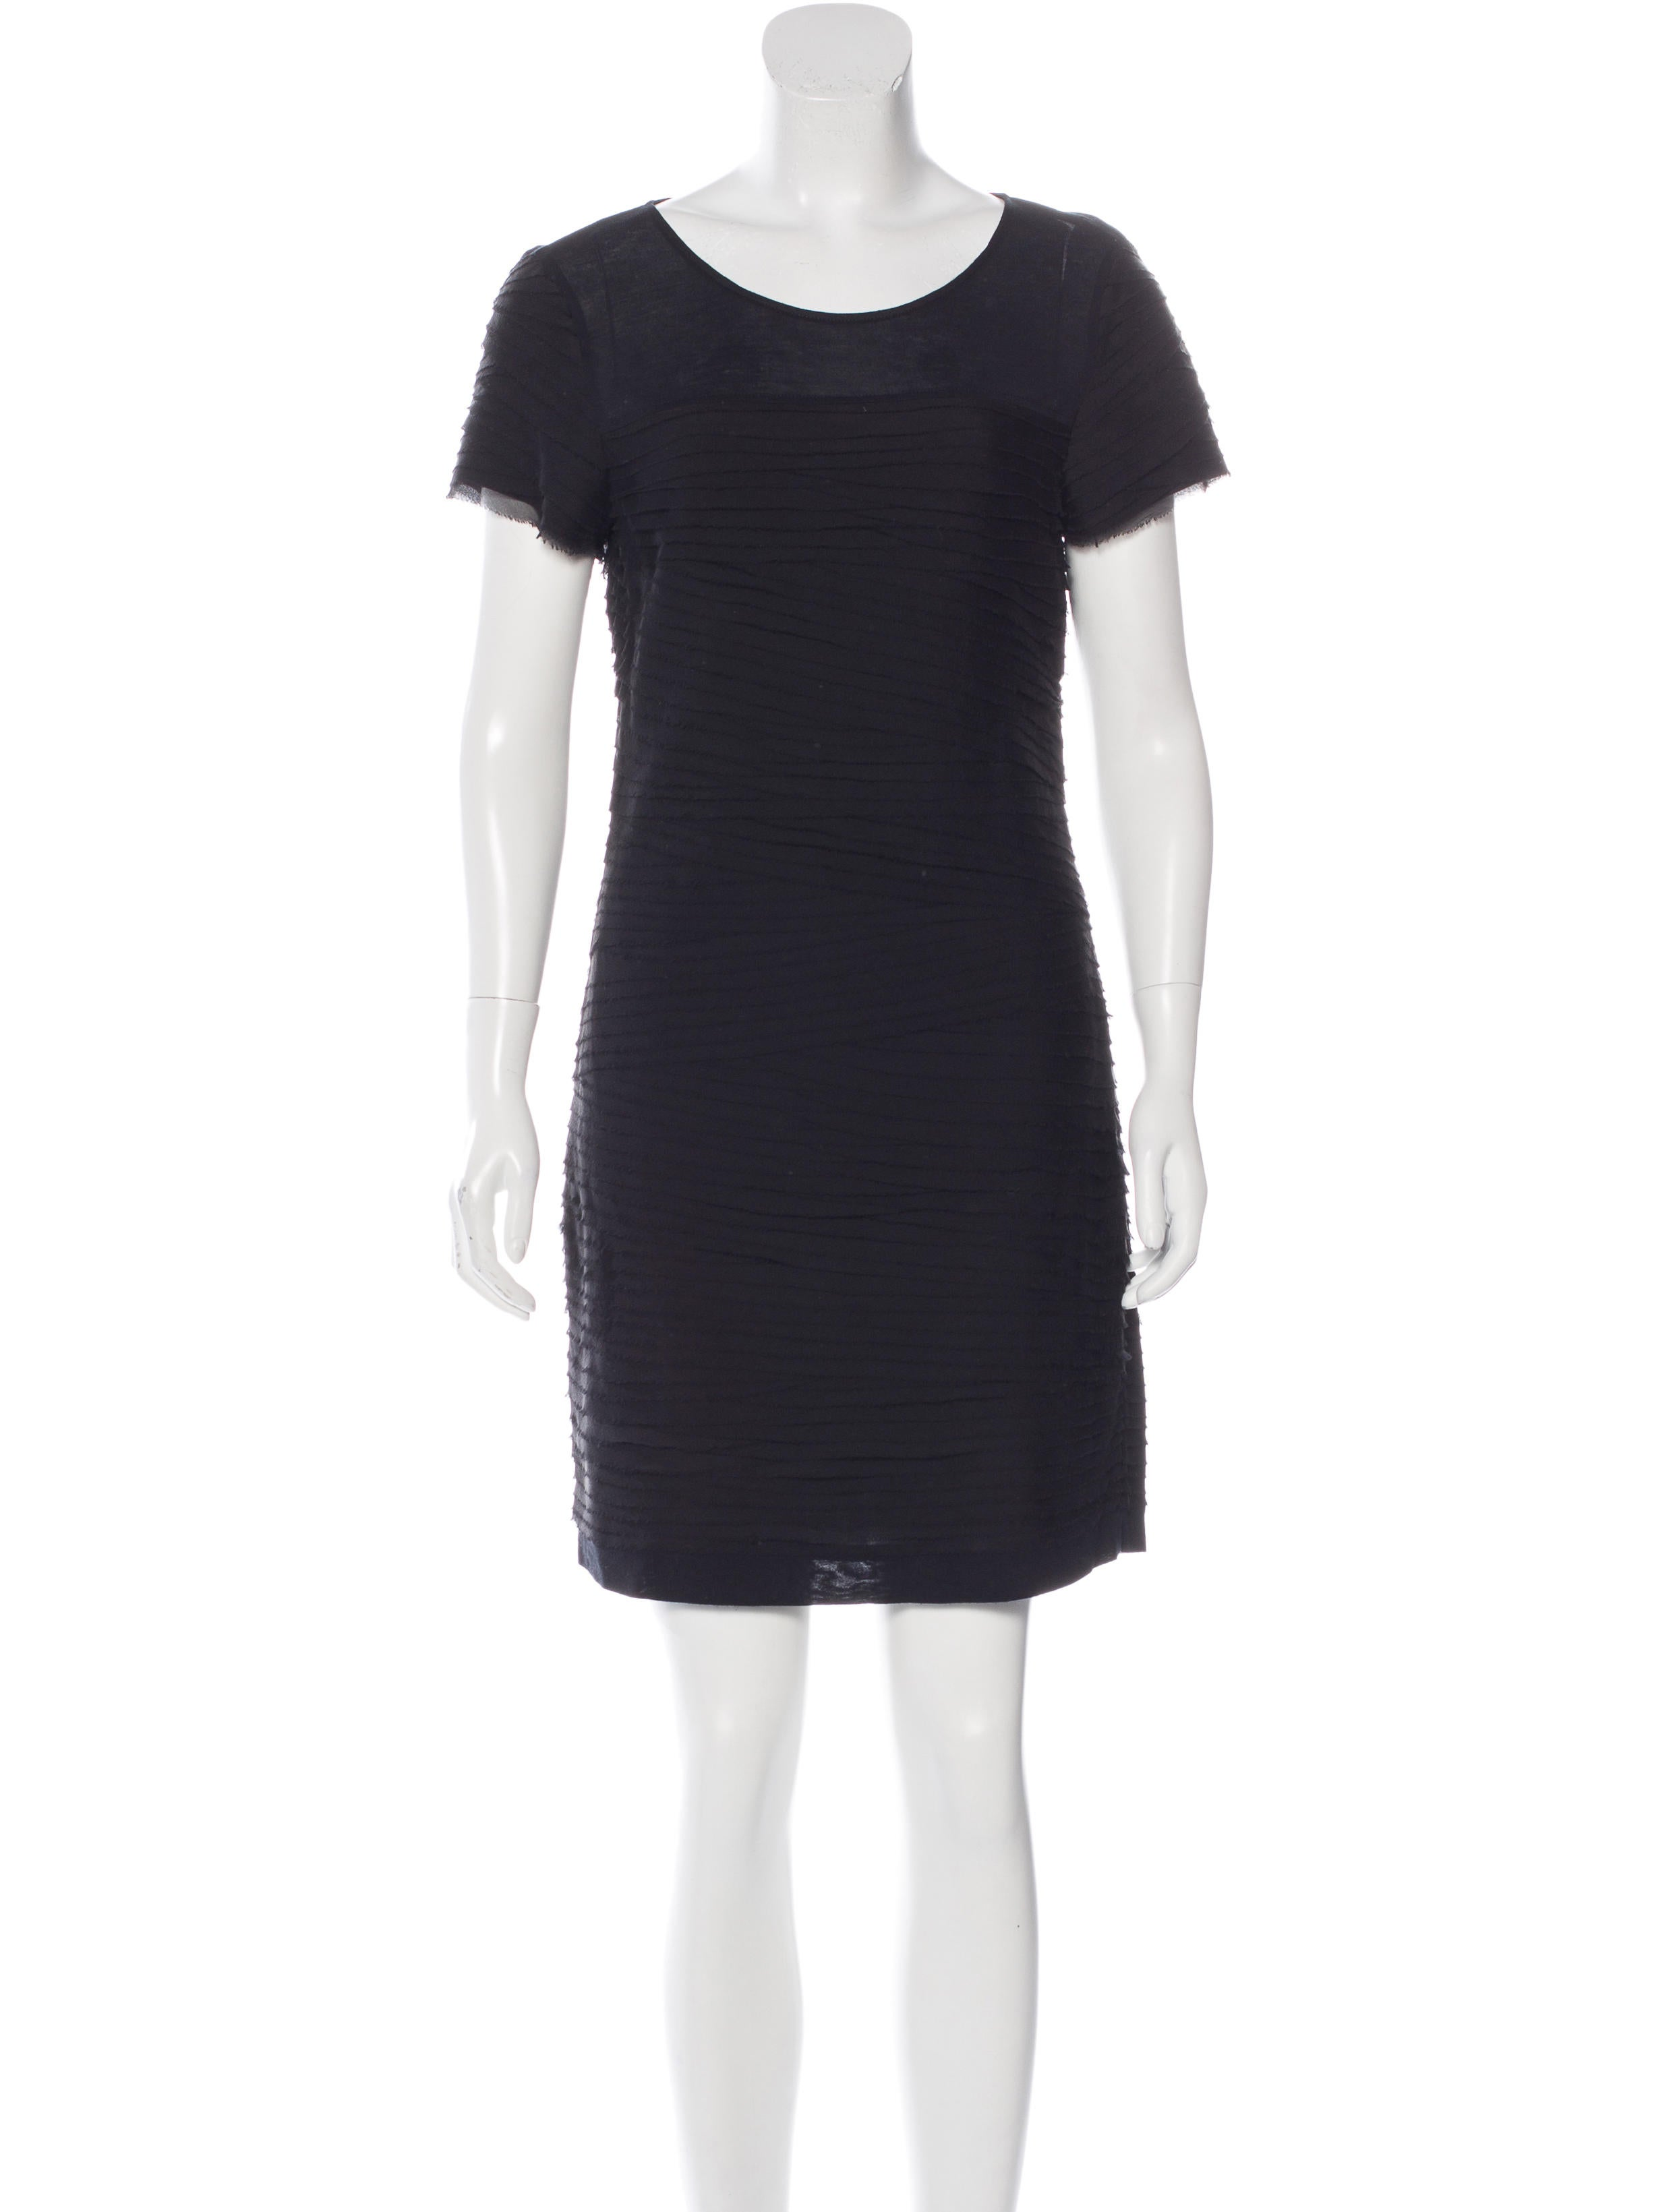 Diane Von Furstenberg Silk Blend Shirt Dress Clothing